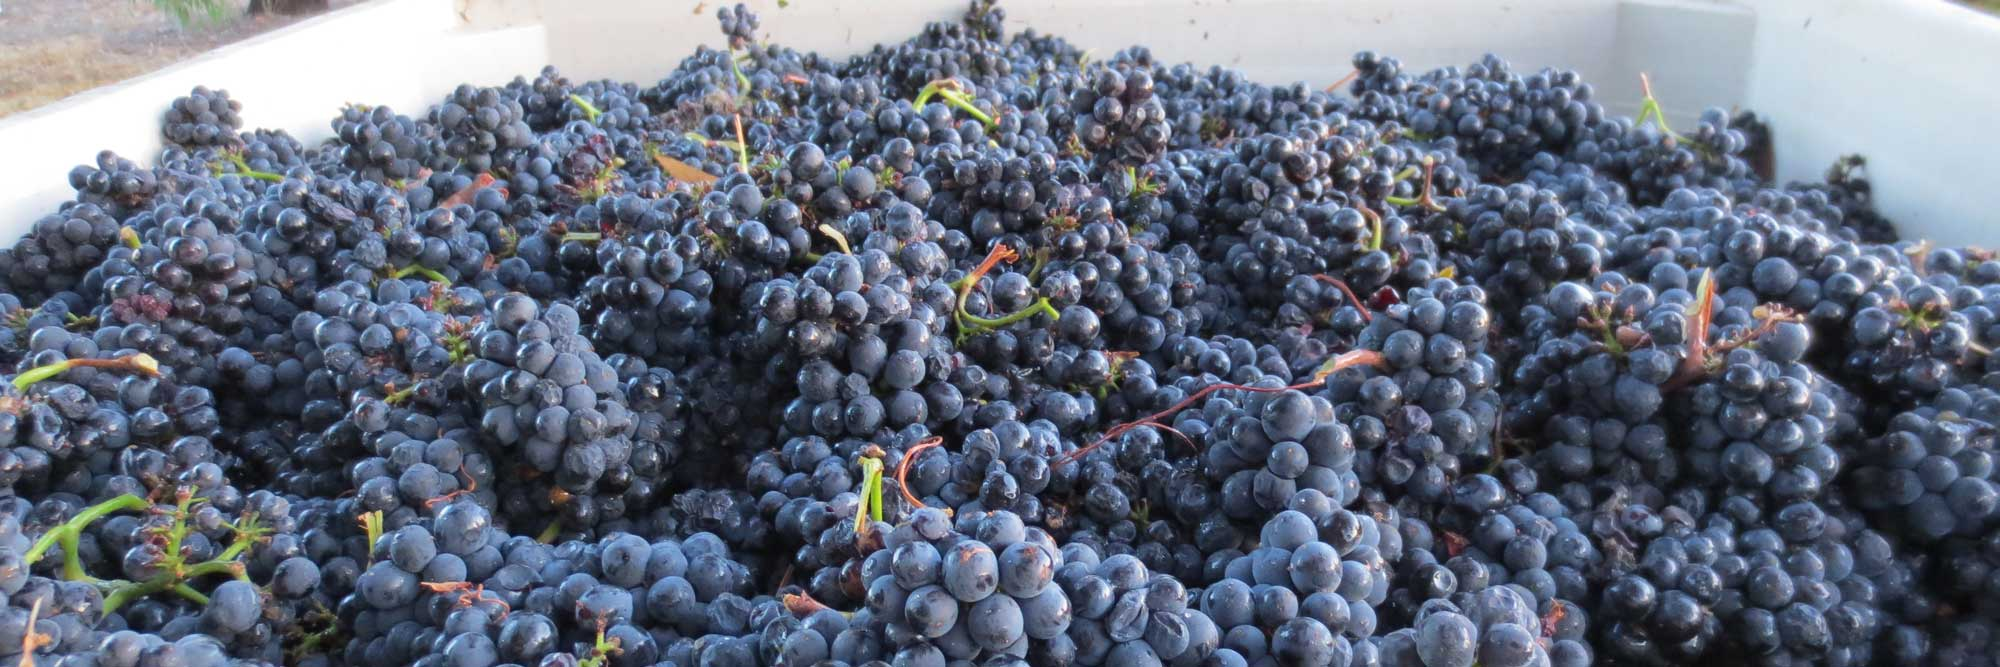 Dearden Wines Harvest